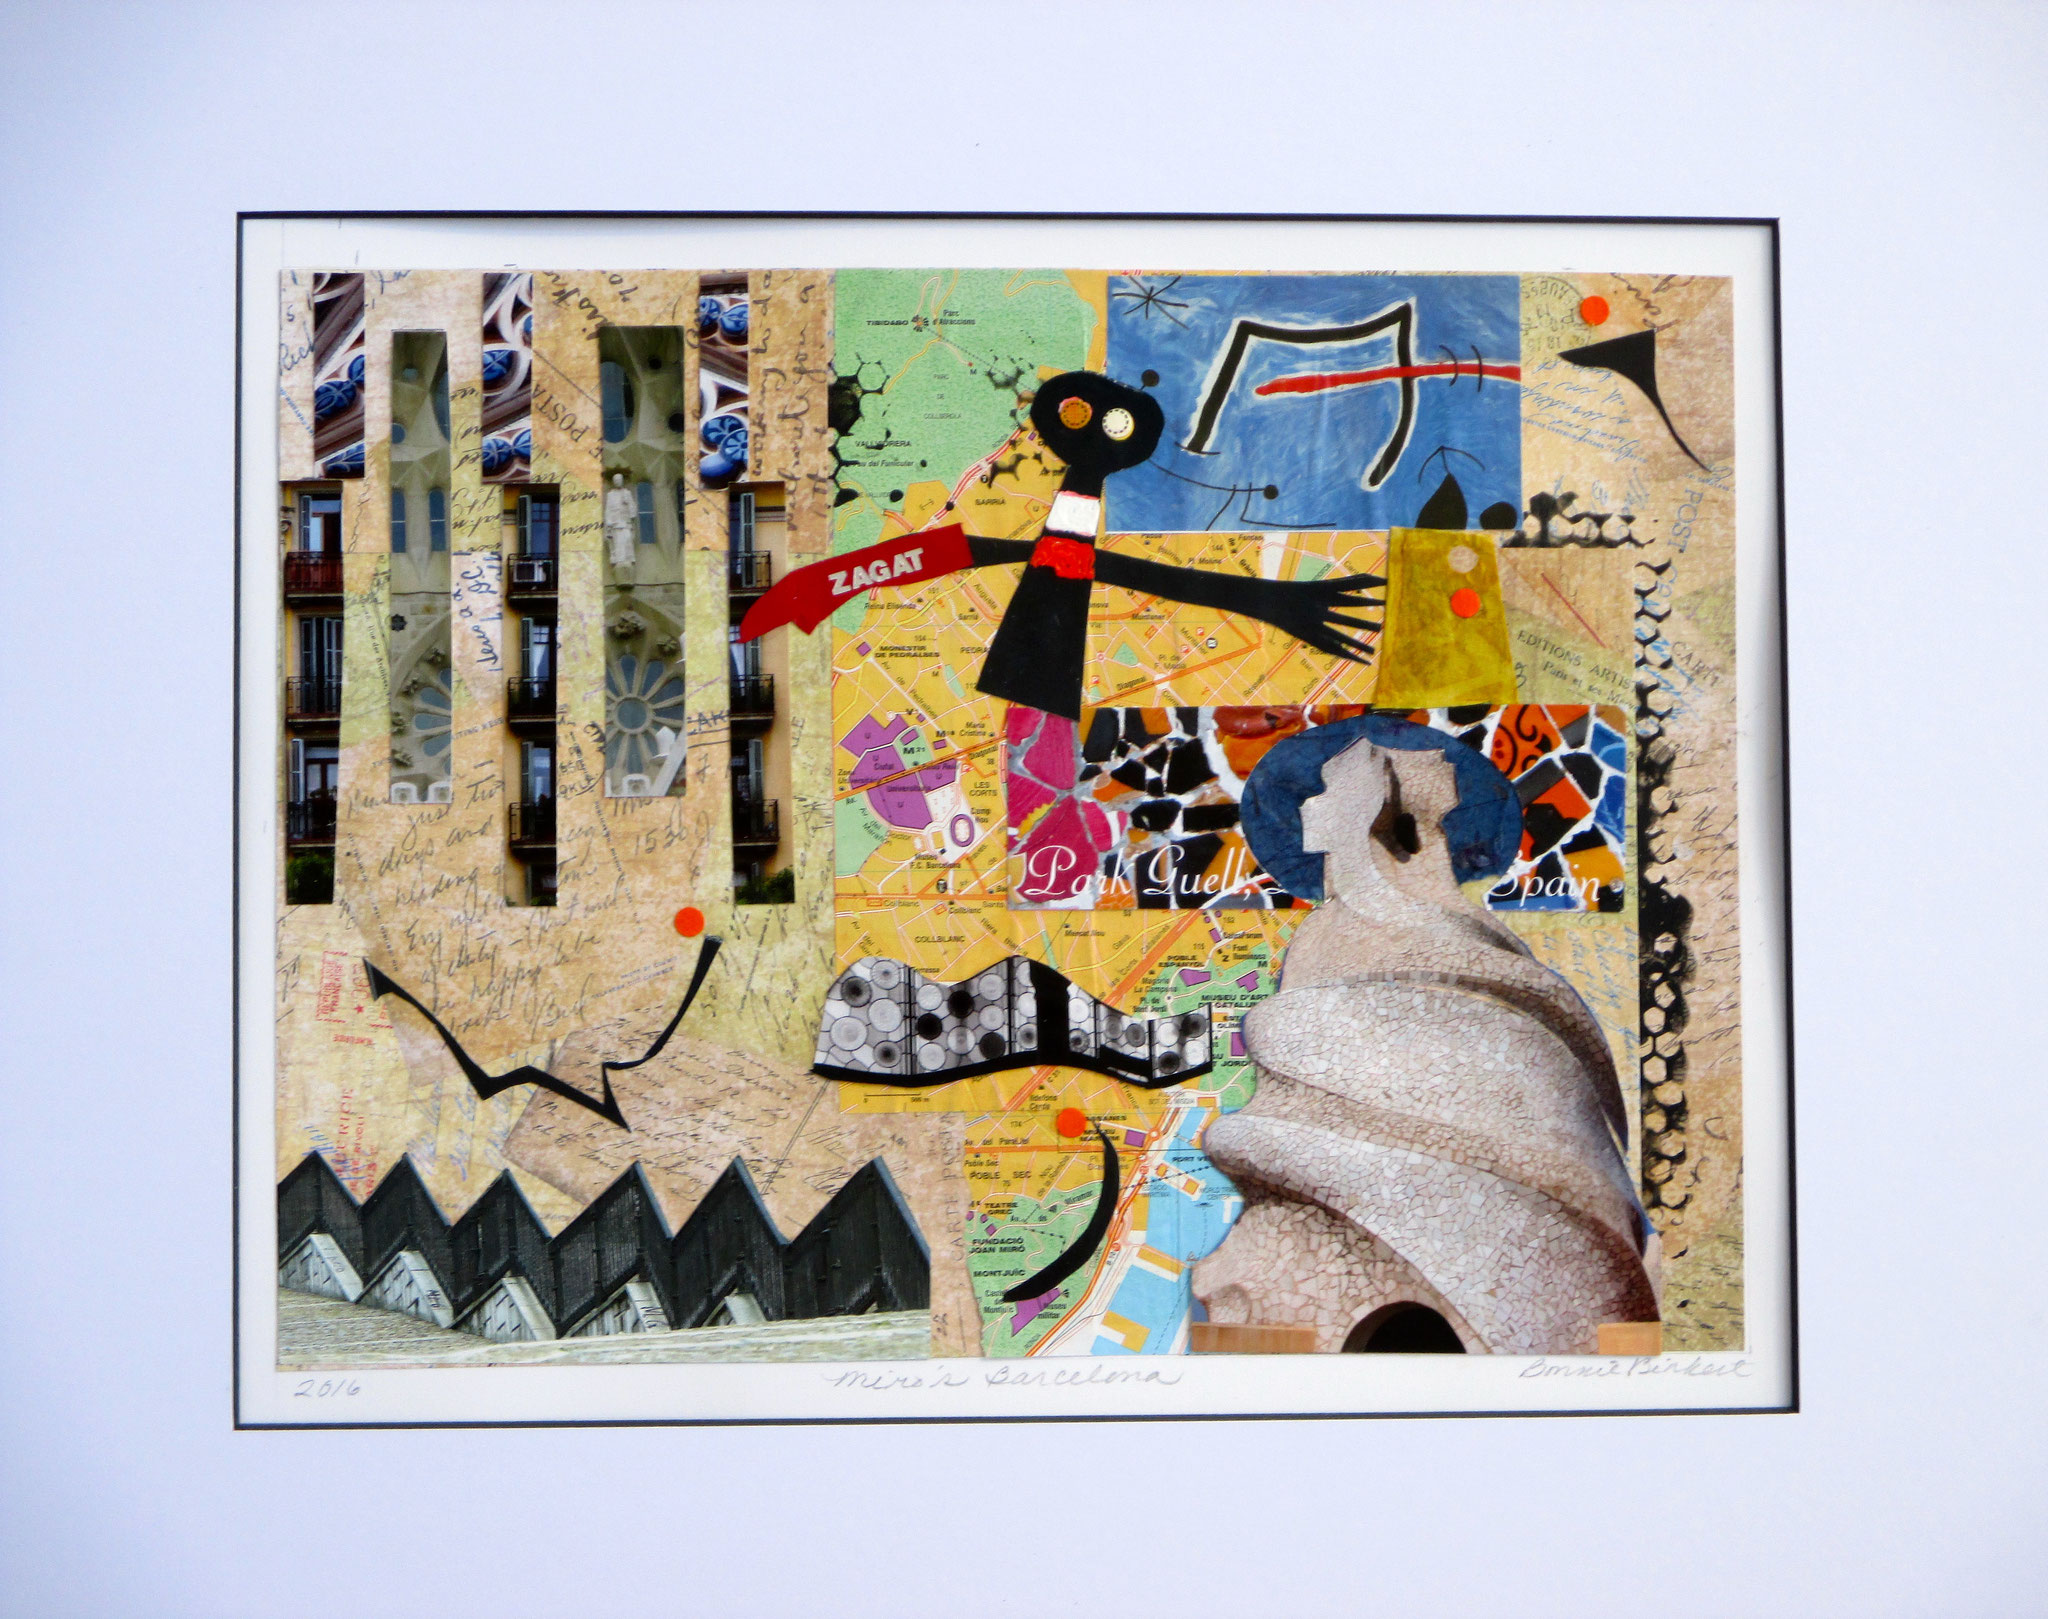 Miro's Barcelona, collage on paper, 20 x 16, matted, 2016